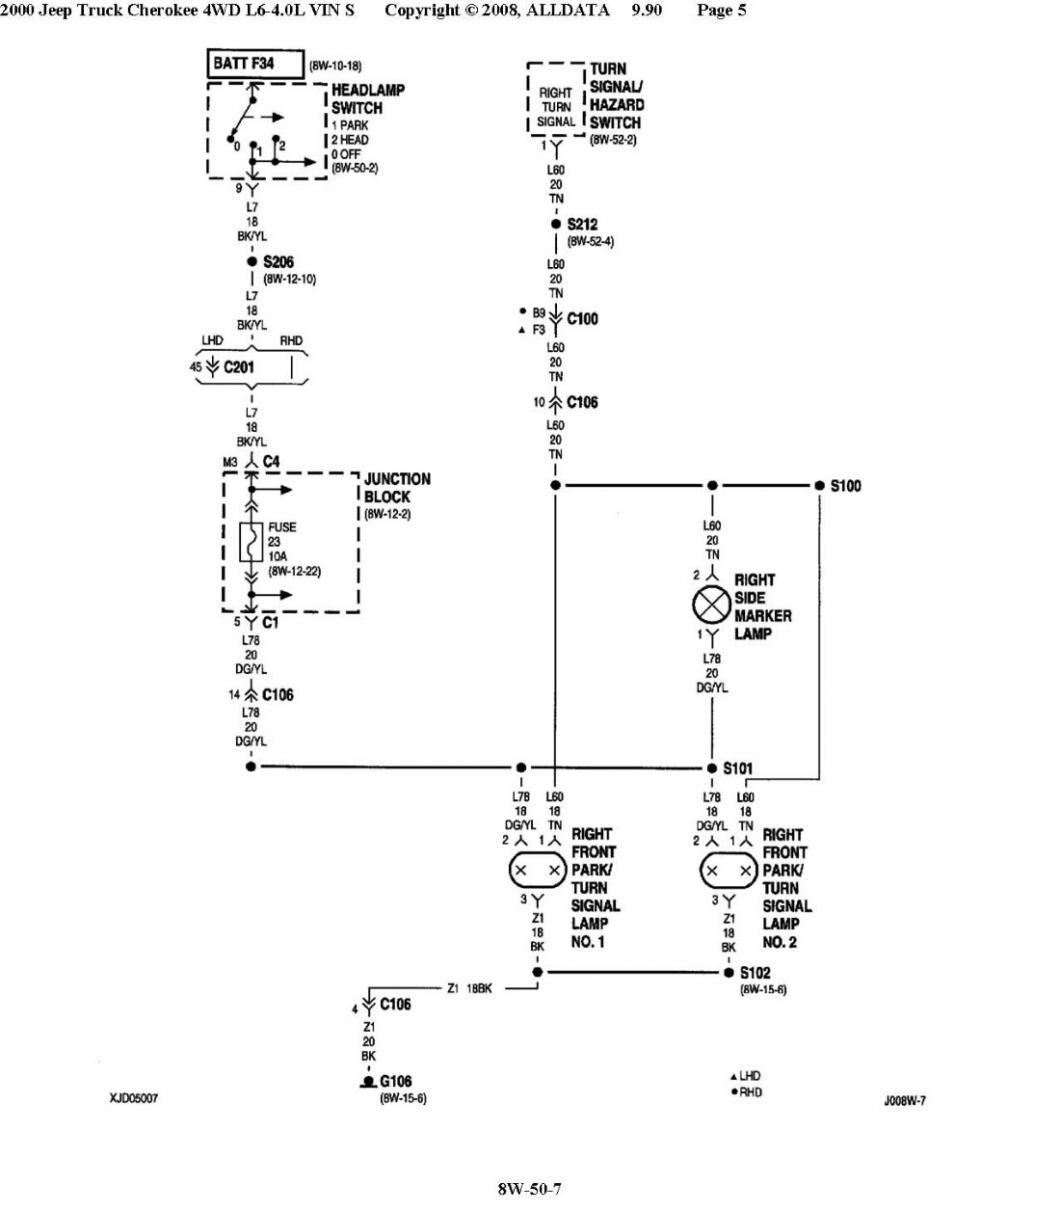 XJ OEM fog light wiring - Jeep Cherokee Forum Jeep Cherokee Headlight Switch Wiring Diagram on 1996 jeep cherokee wiring diagram, jeep cherokee 2000 radiator parts diagram, 88 jeep cherokee wiring diagram, jeep cherokee fuse diagram,